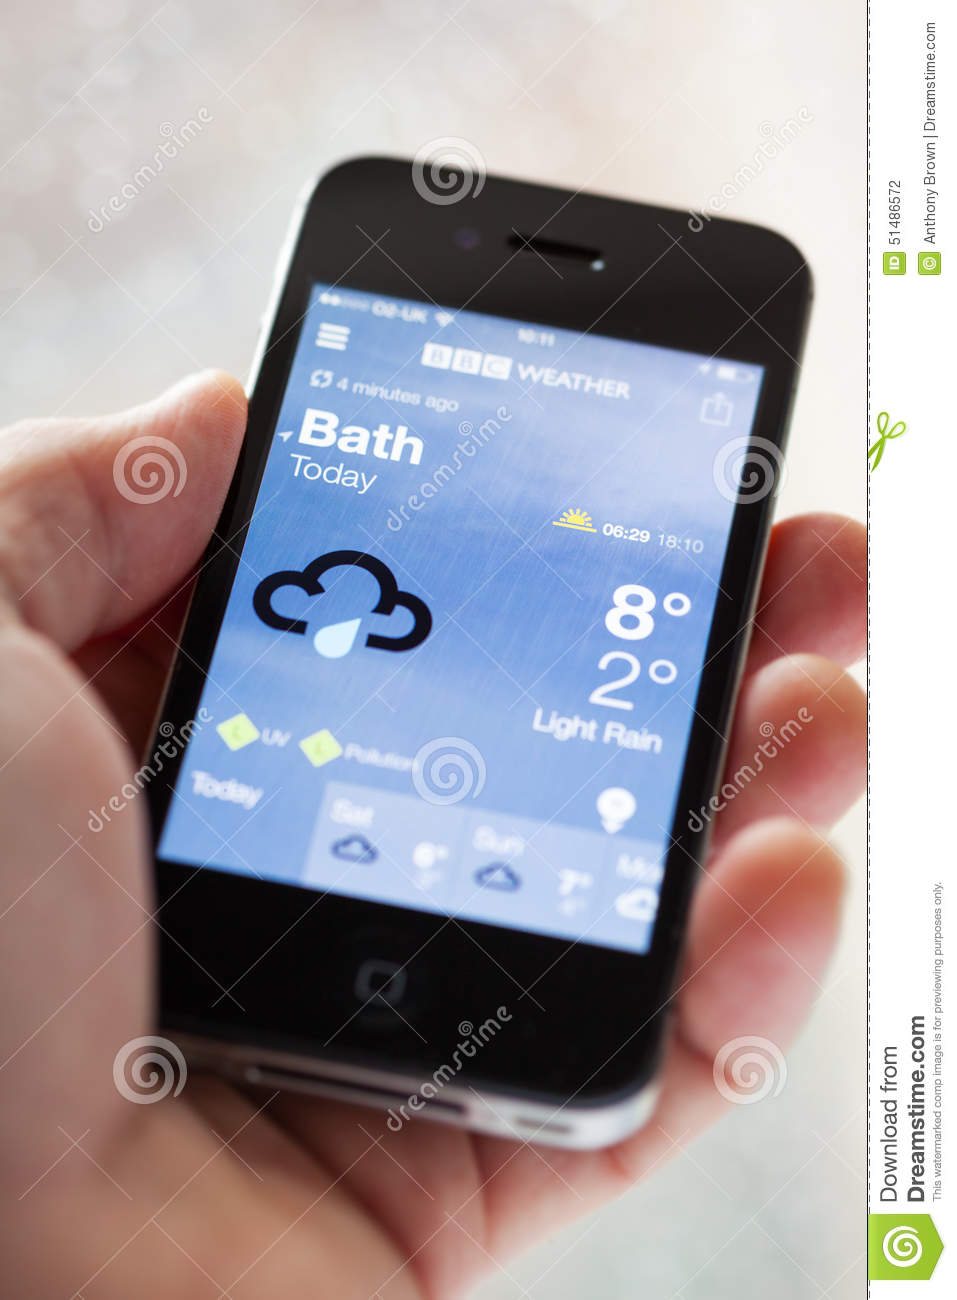 BBC Weather App On An IPhone Editorial Photography - Image